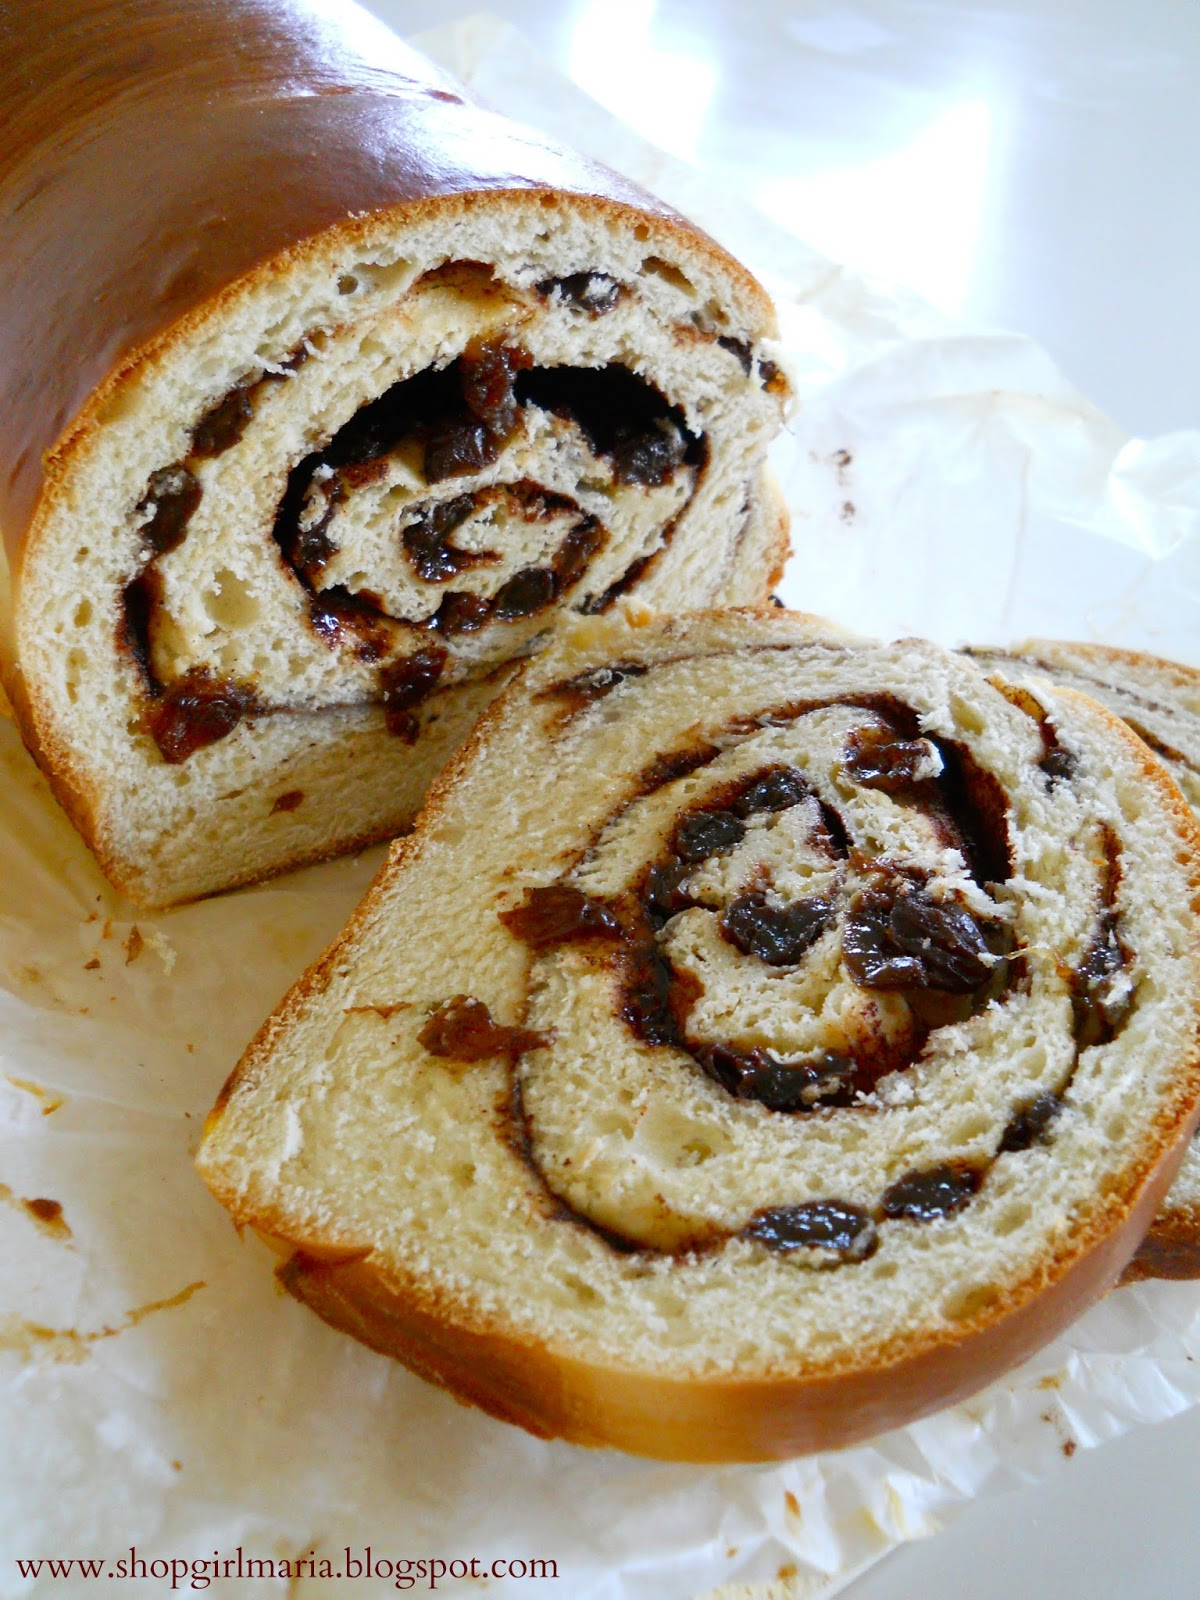 Shopgirl: Cinnamon Raisin Swirl Bread